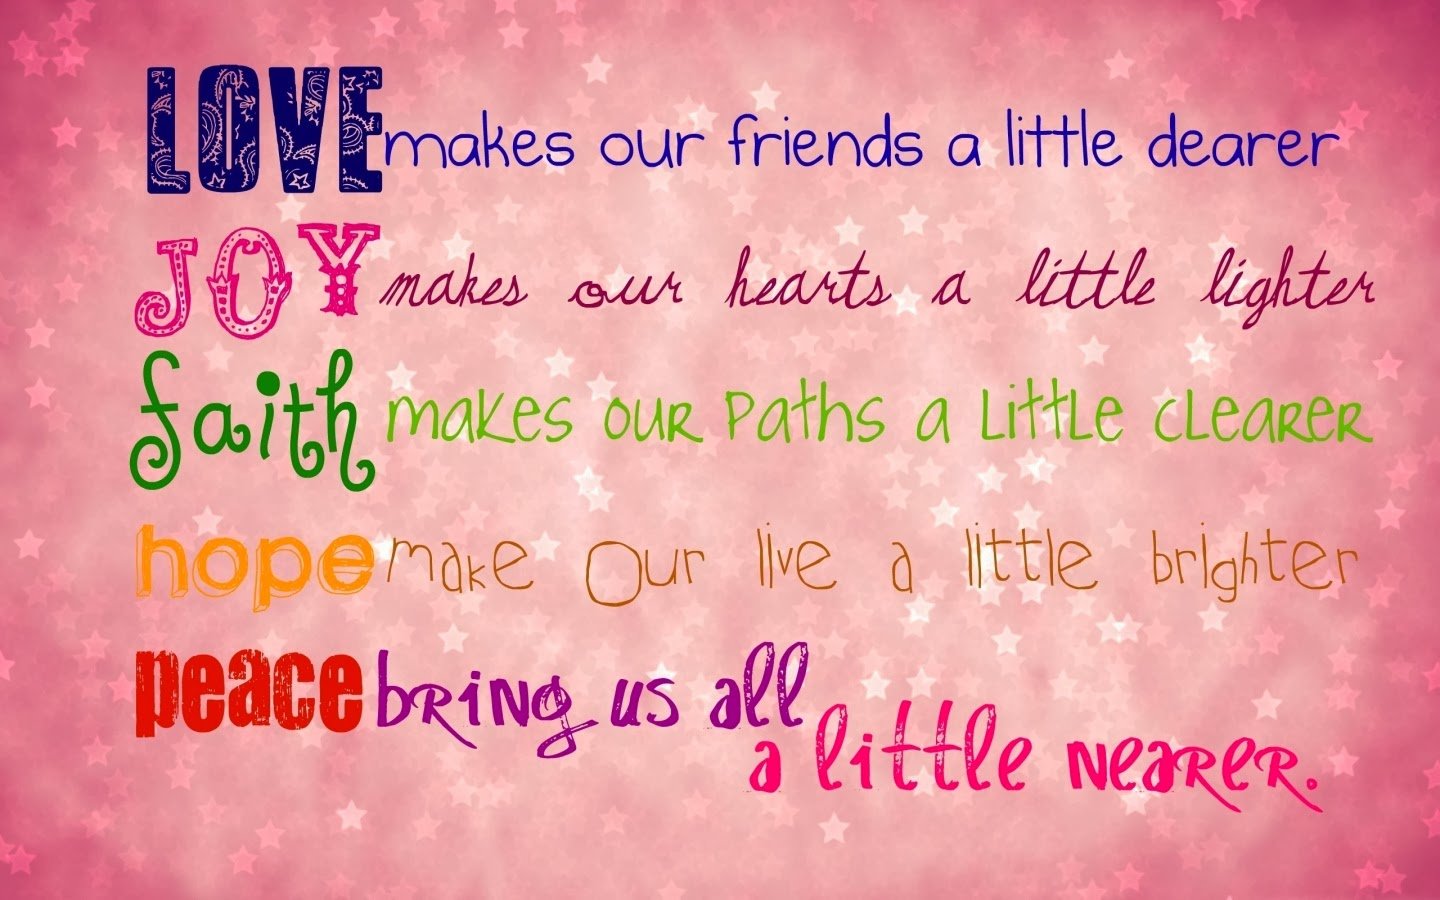 Love Quotes For Friends 58 Hd Cute Quotes & Sayings About Life And Love With Images